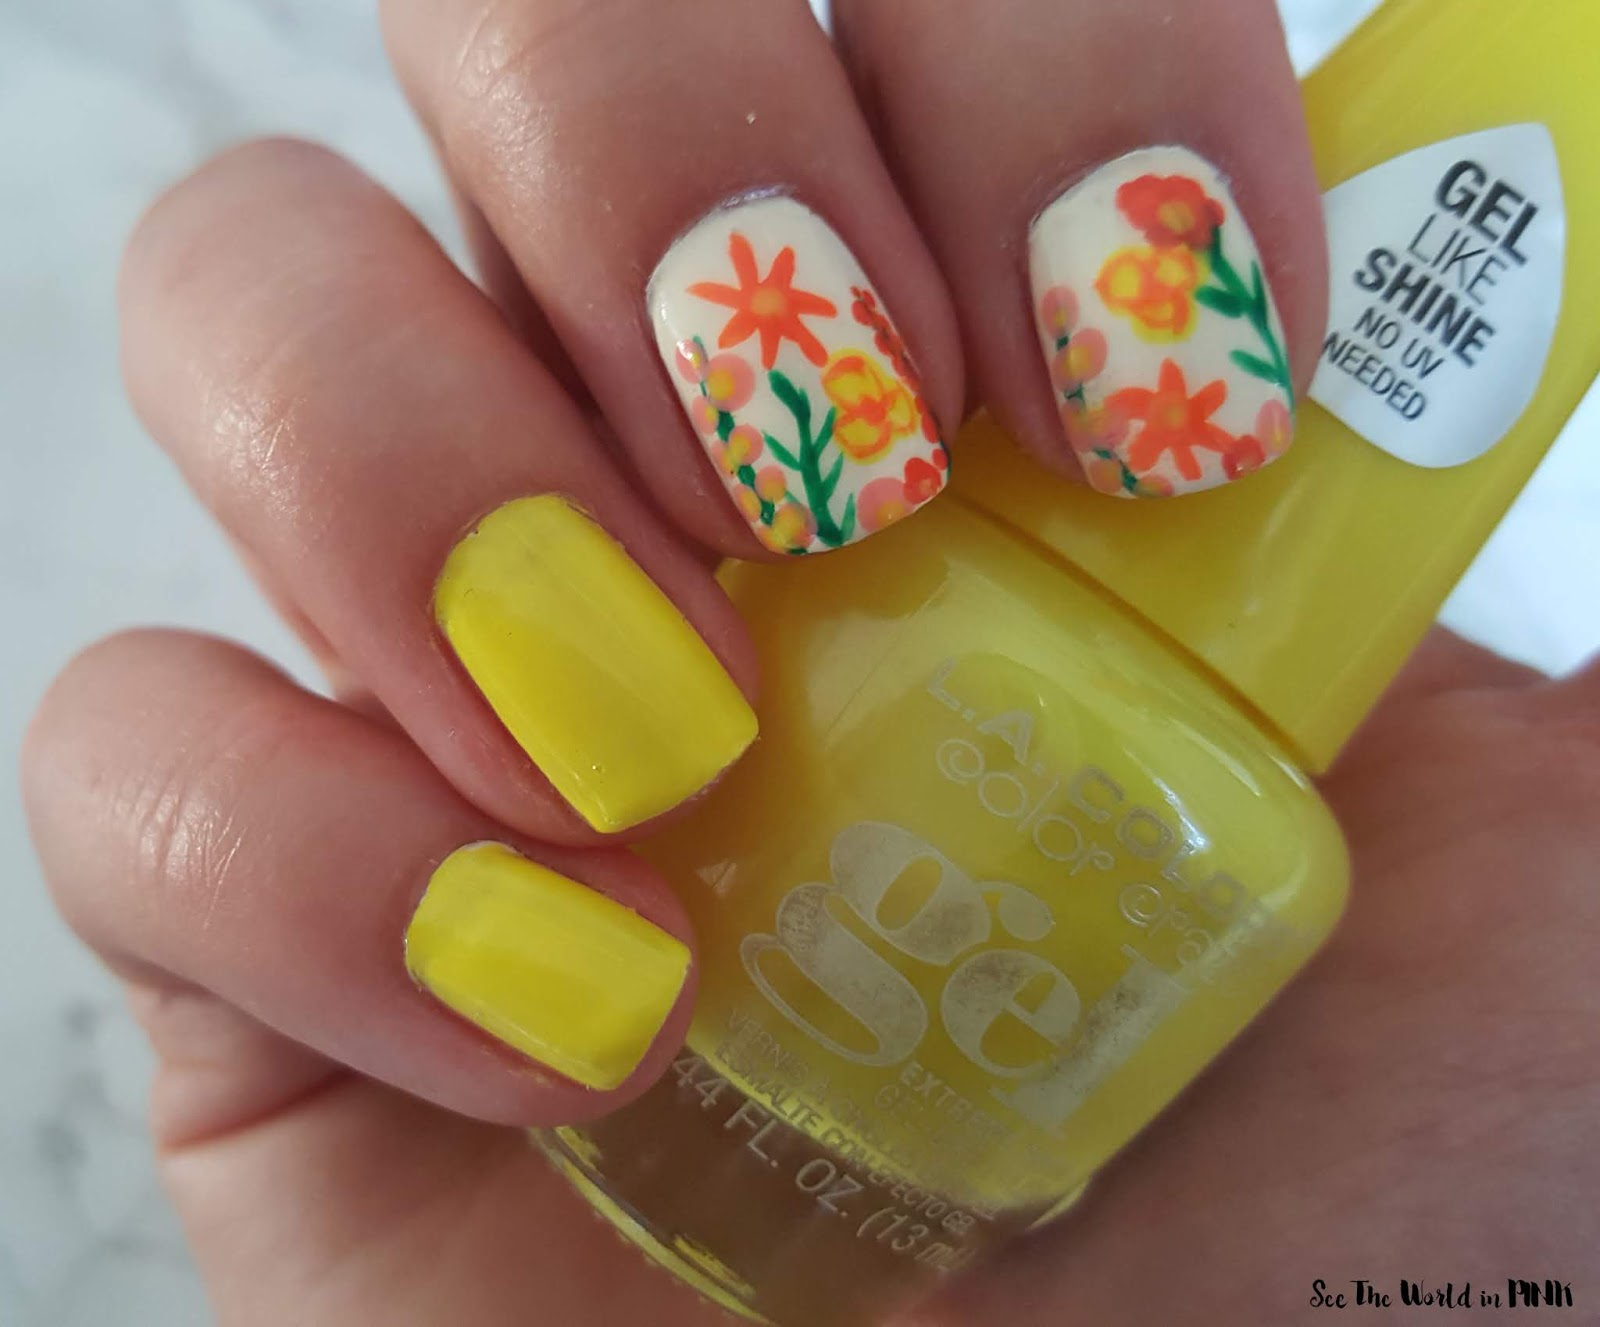 Manicure Monday - Summer Floral Nail Art